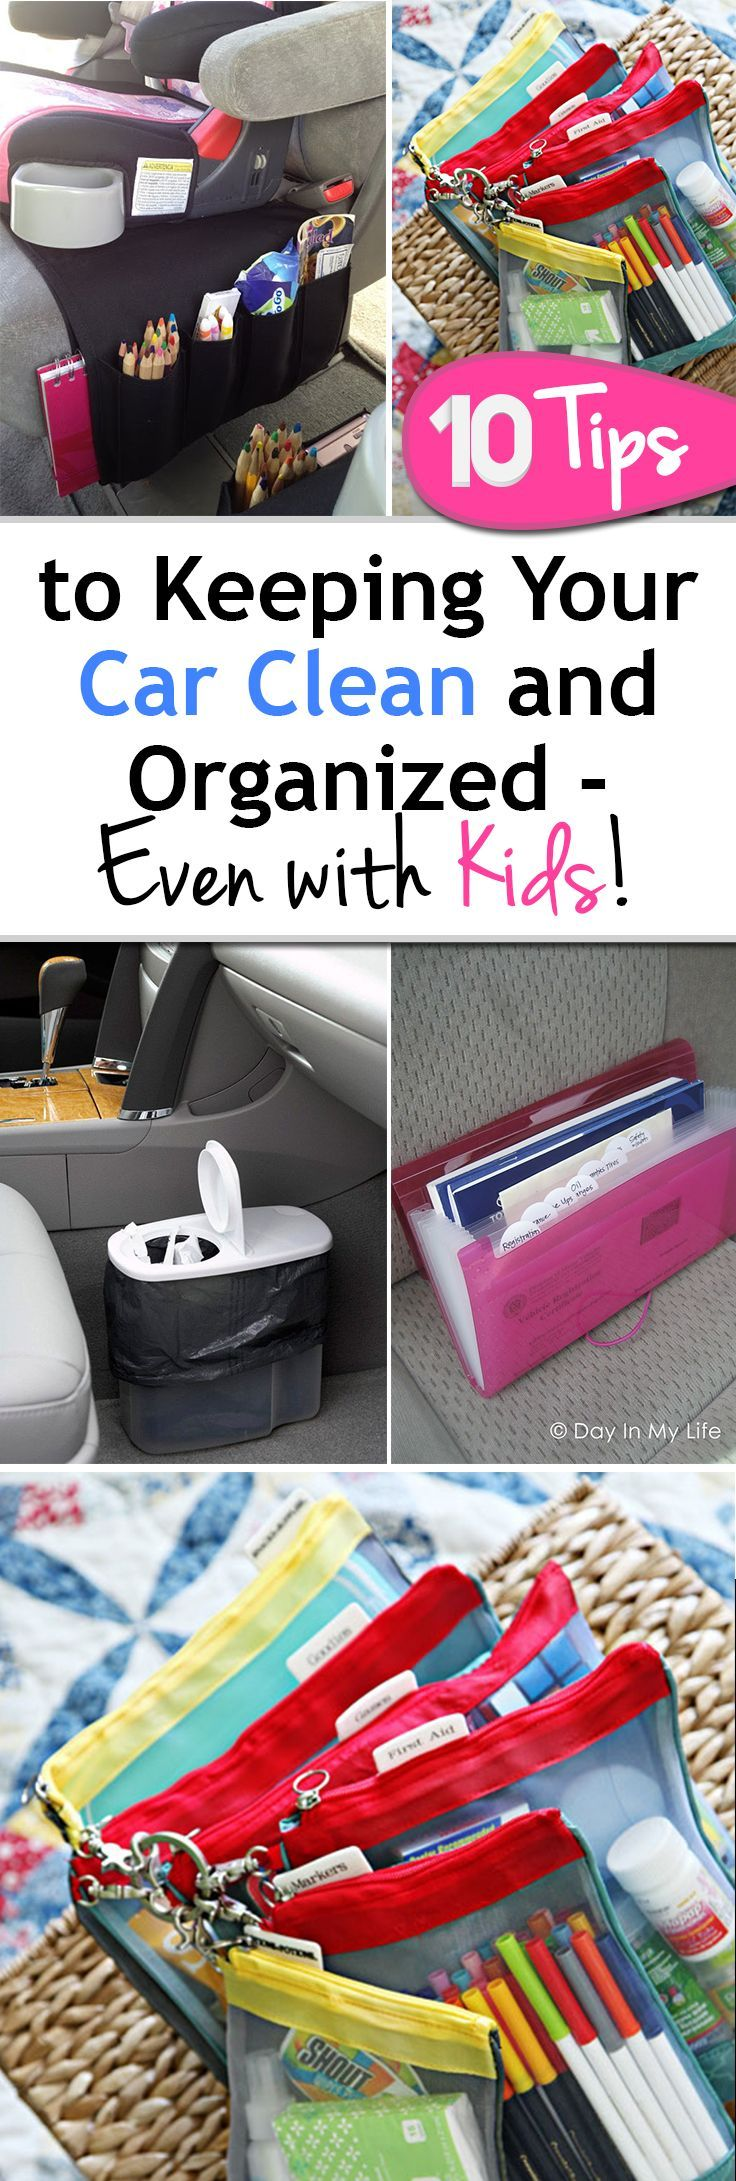 10 Tips to Keeping Your Car Clean and Organized- Even with kids! - Wrapped in Rust